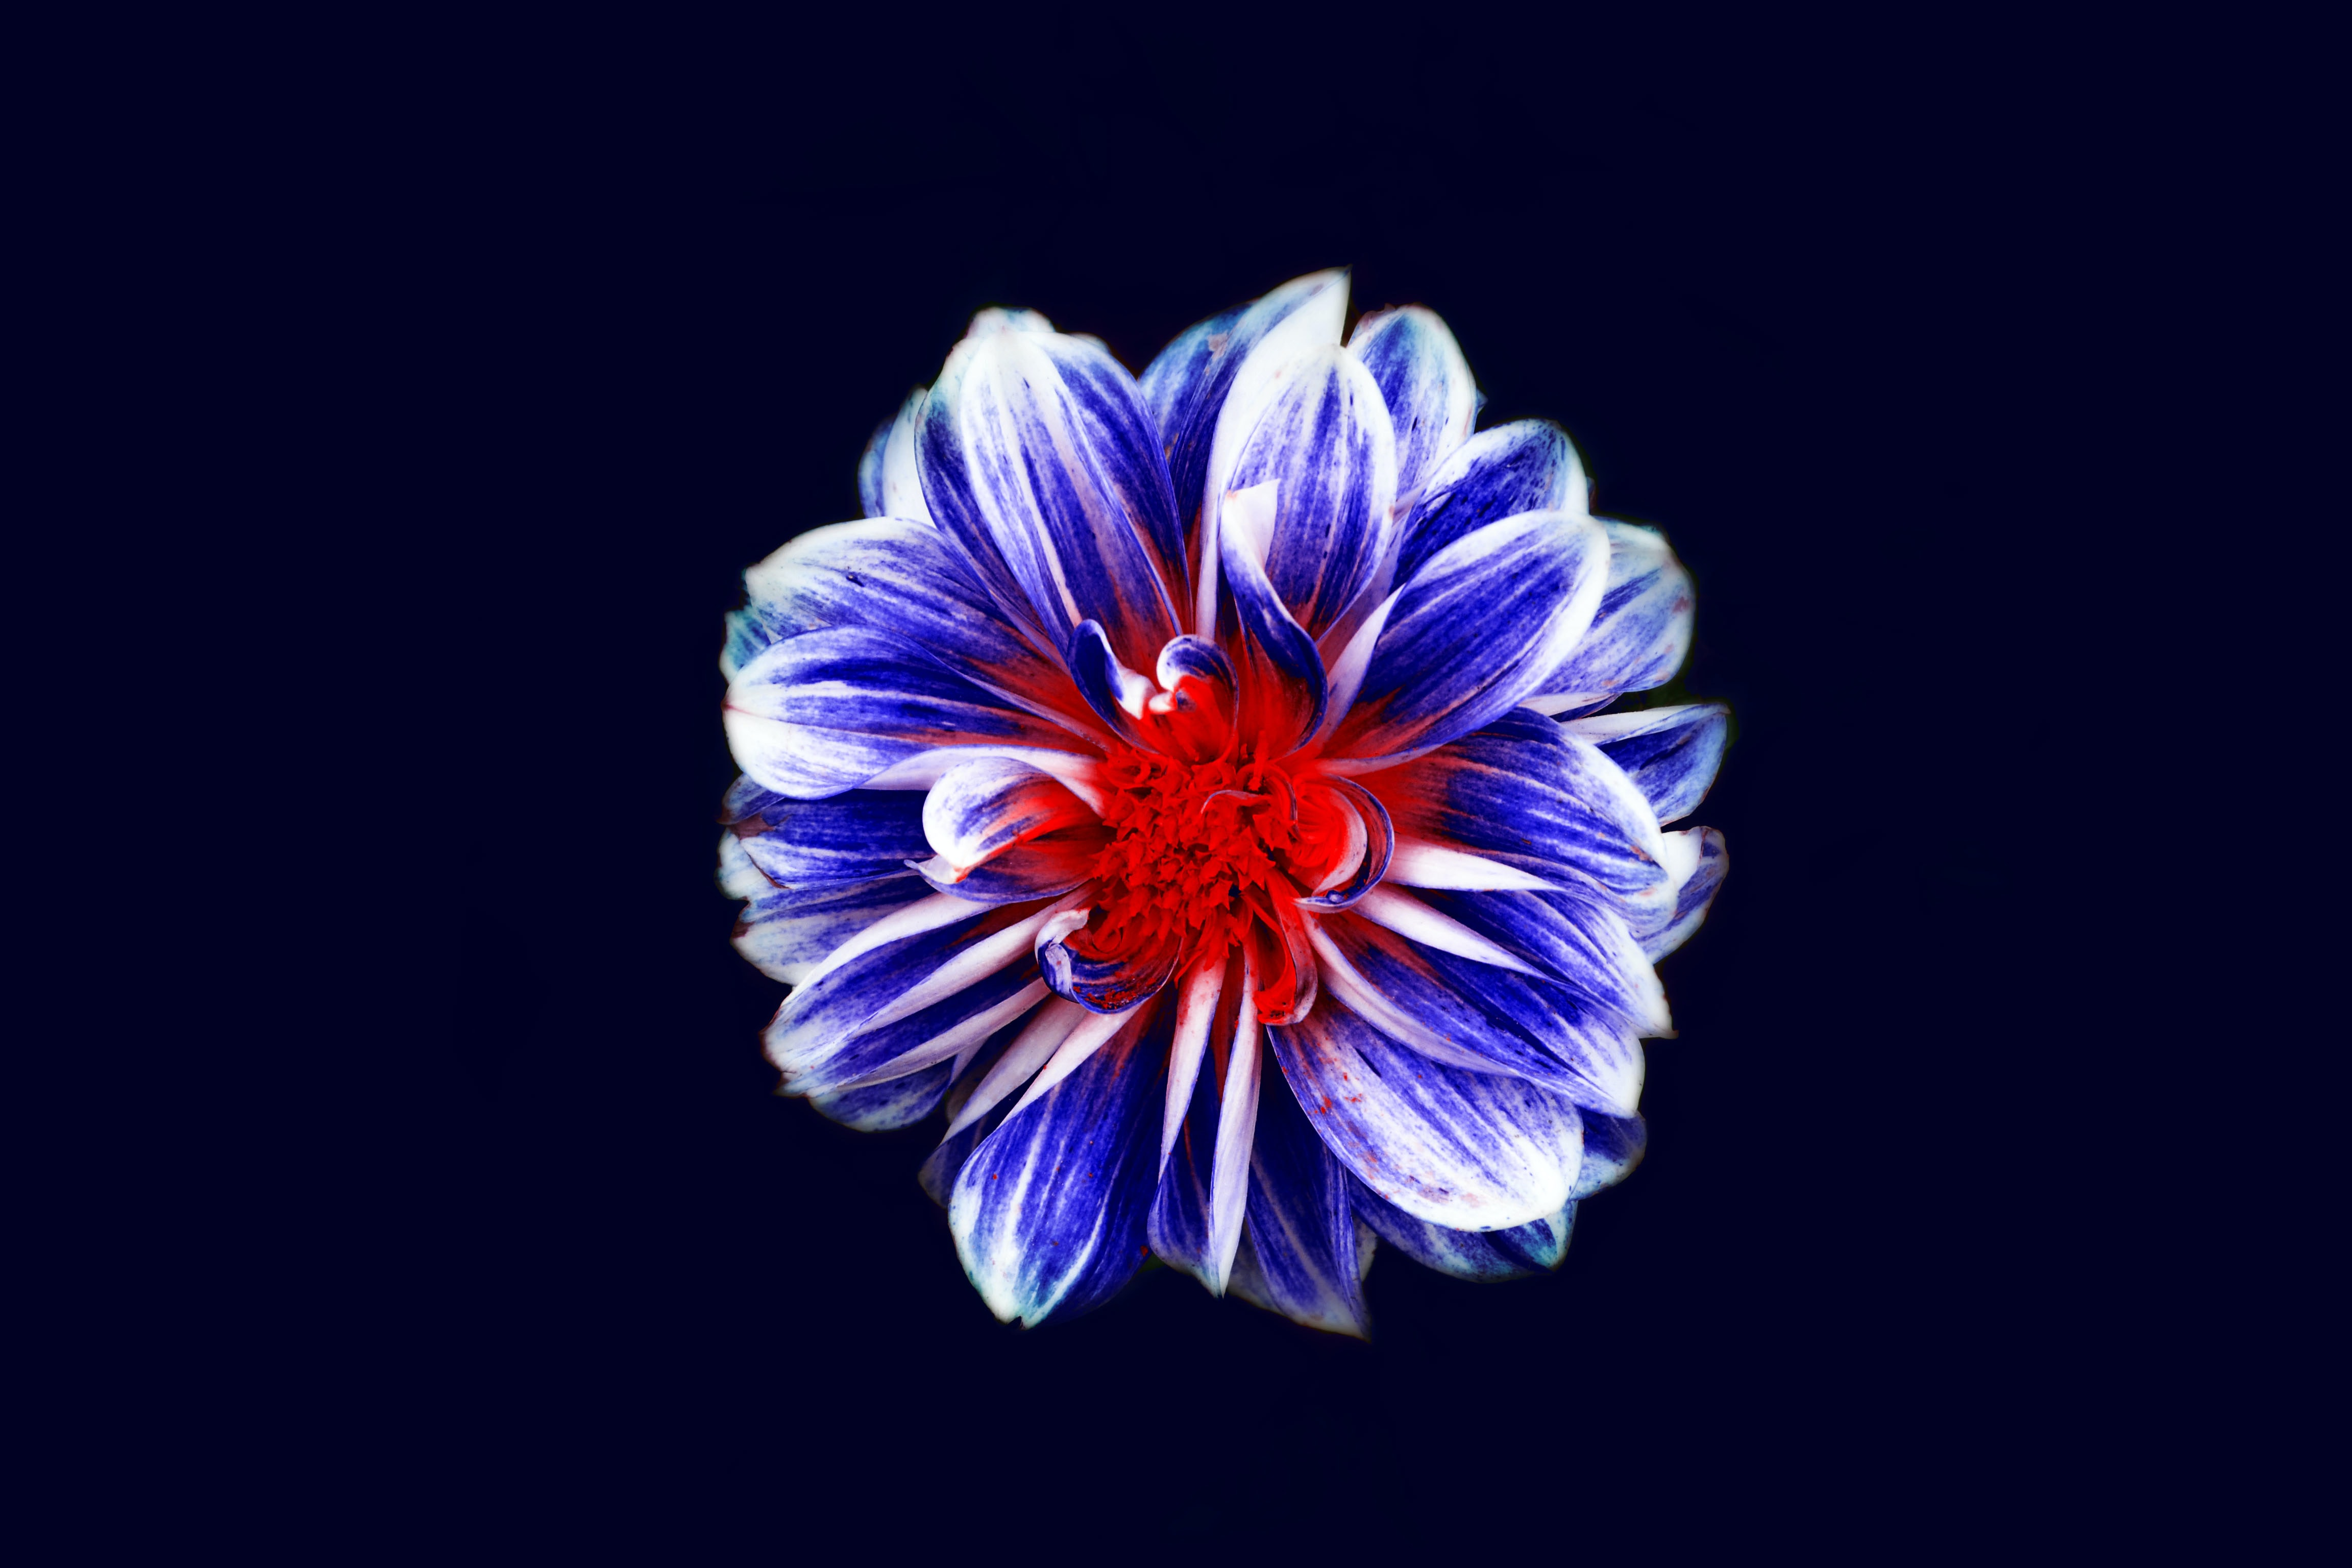 blue and red flower digital wallpaper